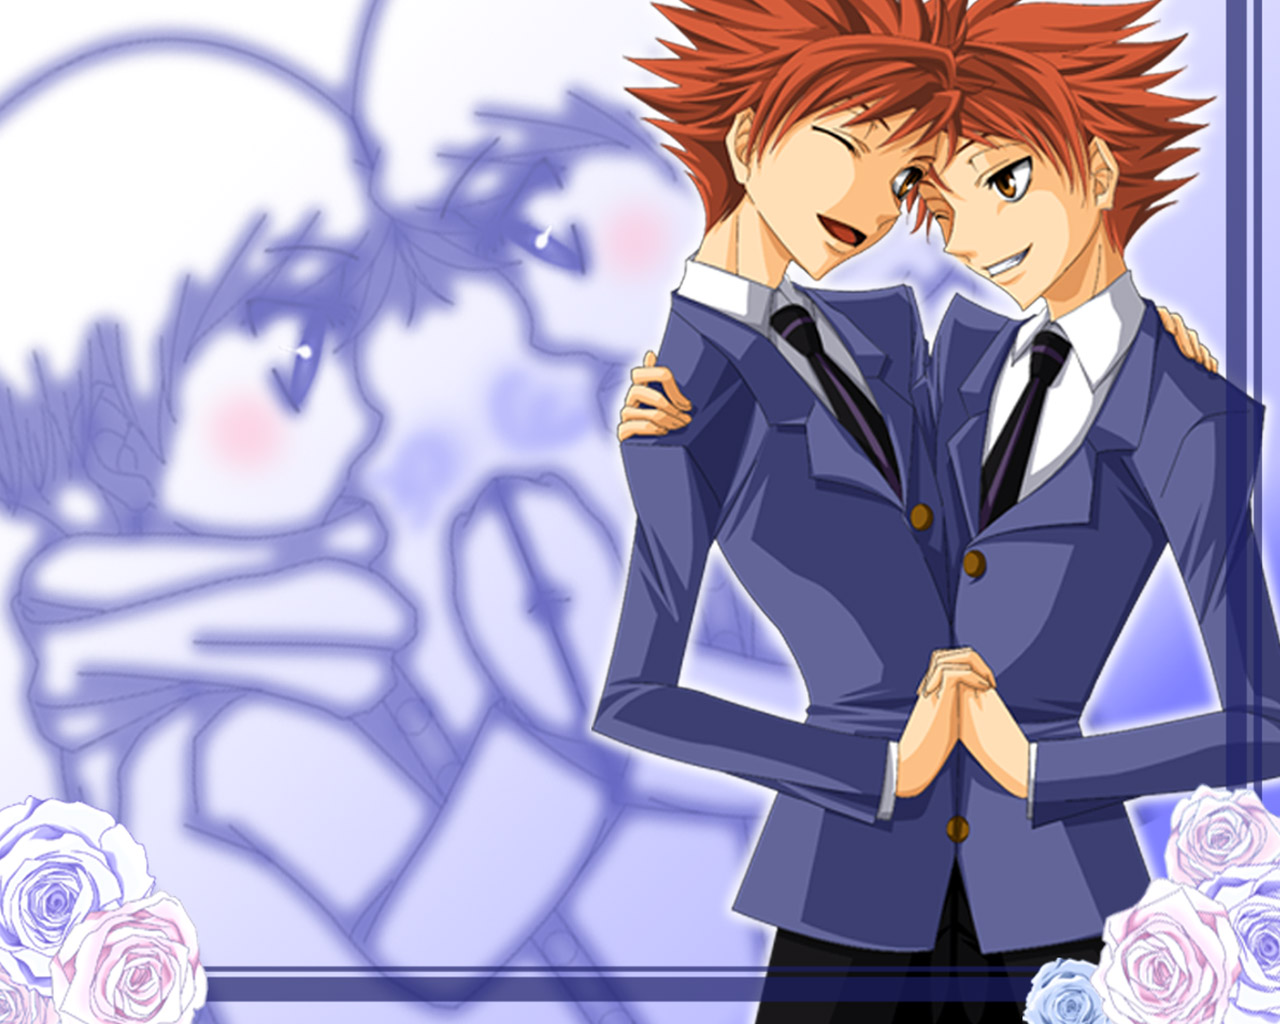 ouran high school host club images ouran hd wallpaper and